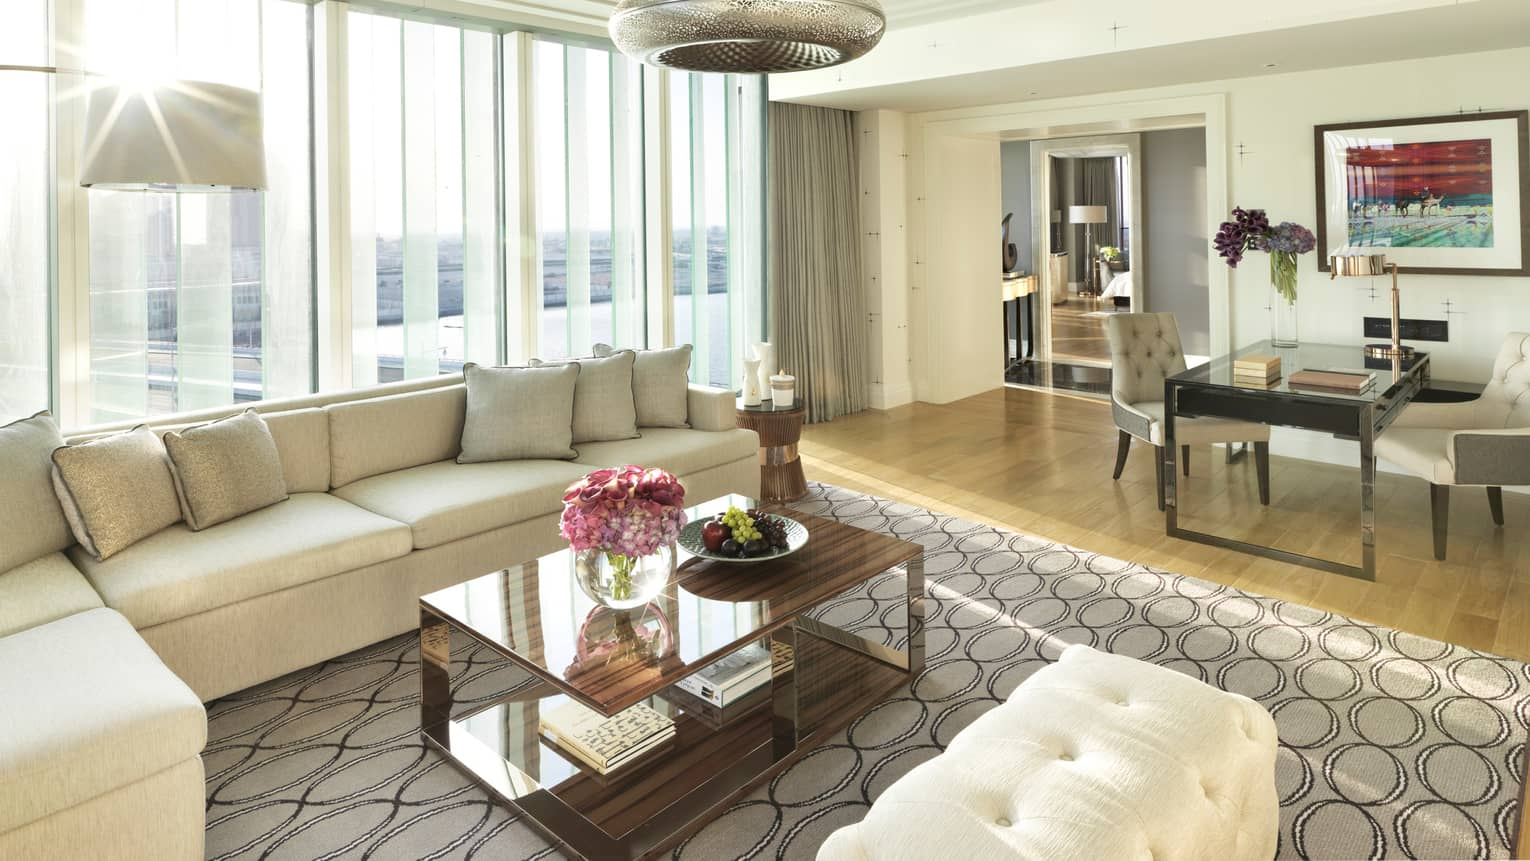 the living room mattress abu dhabi how to decorate with no fireplace hotel suites luxury rooms four seasons deluxe executive suite l shaped white sofa bench against